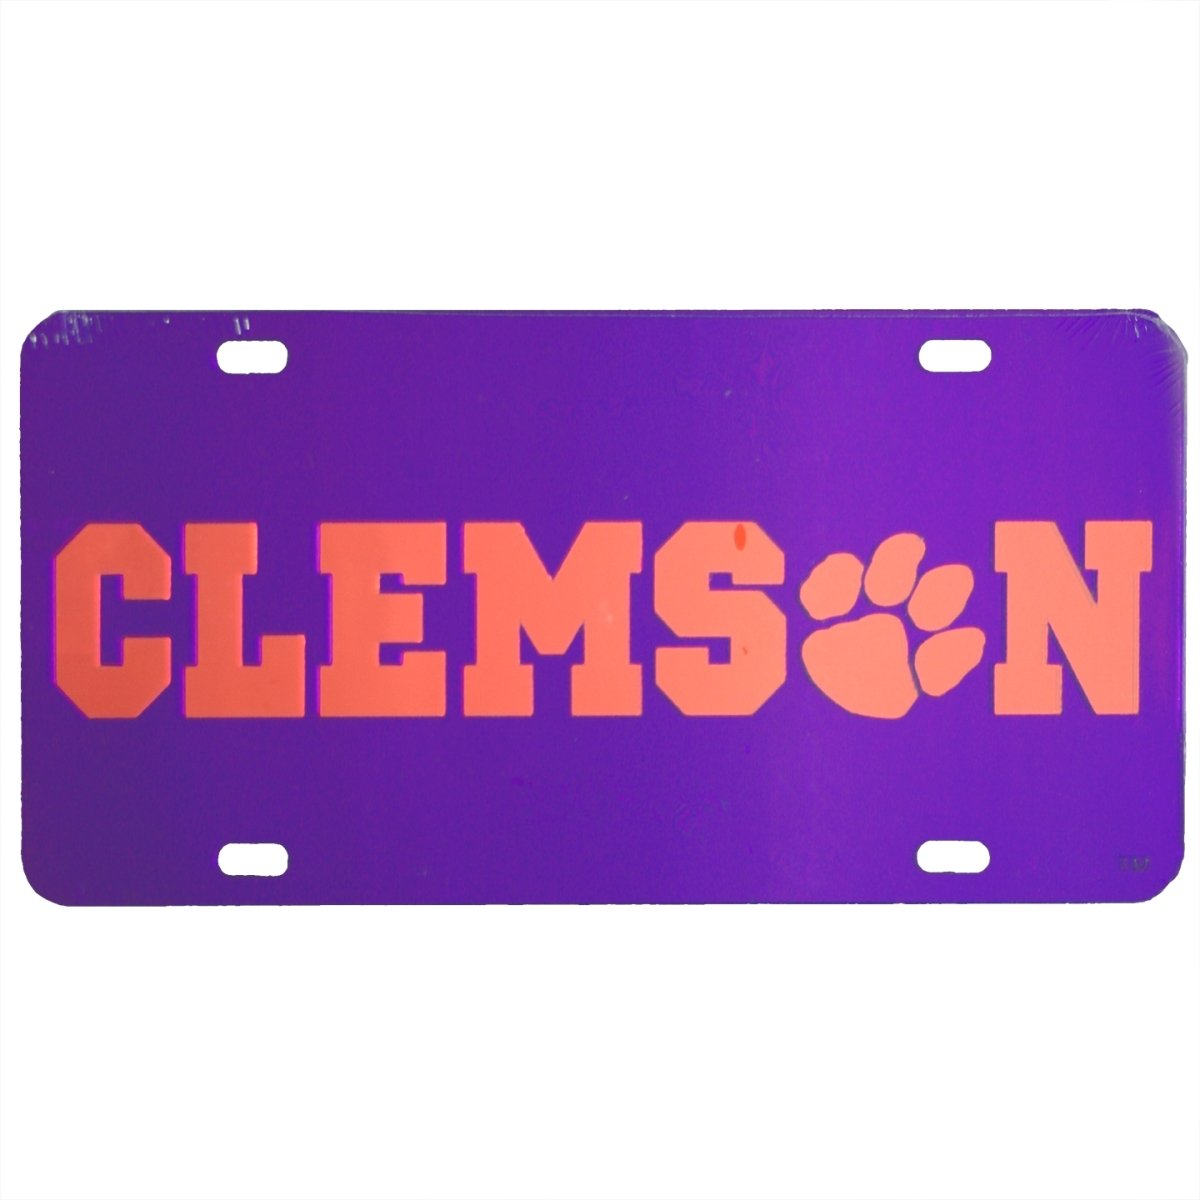 Laser Cut Mirrored Clems(paw)n Car Tag Purple With Orange Logo - Mr. Knickerbocker